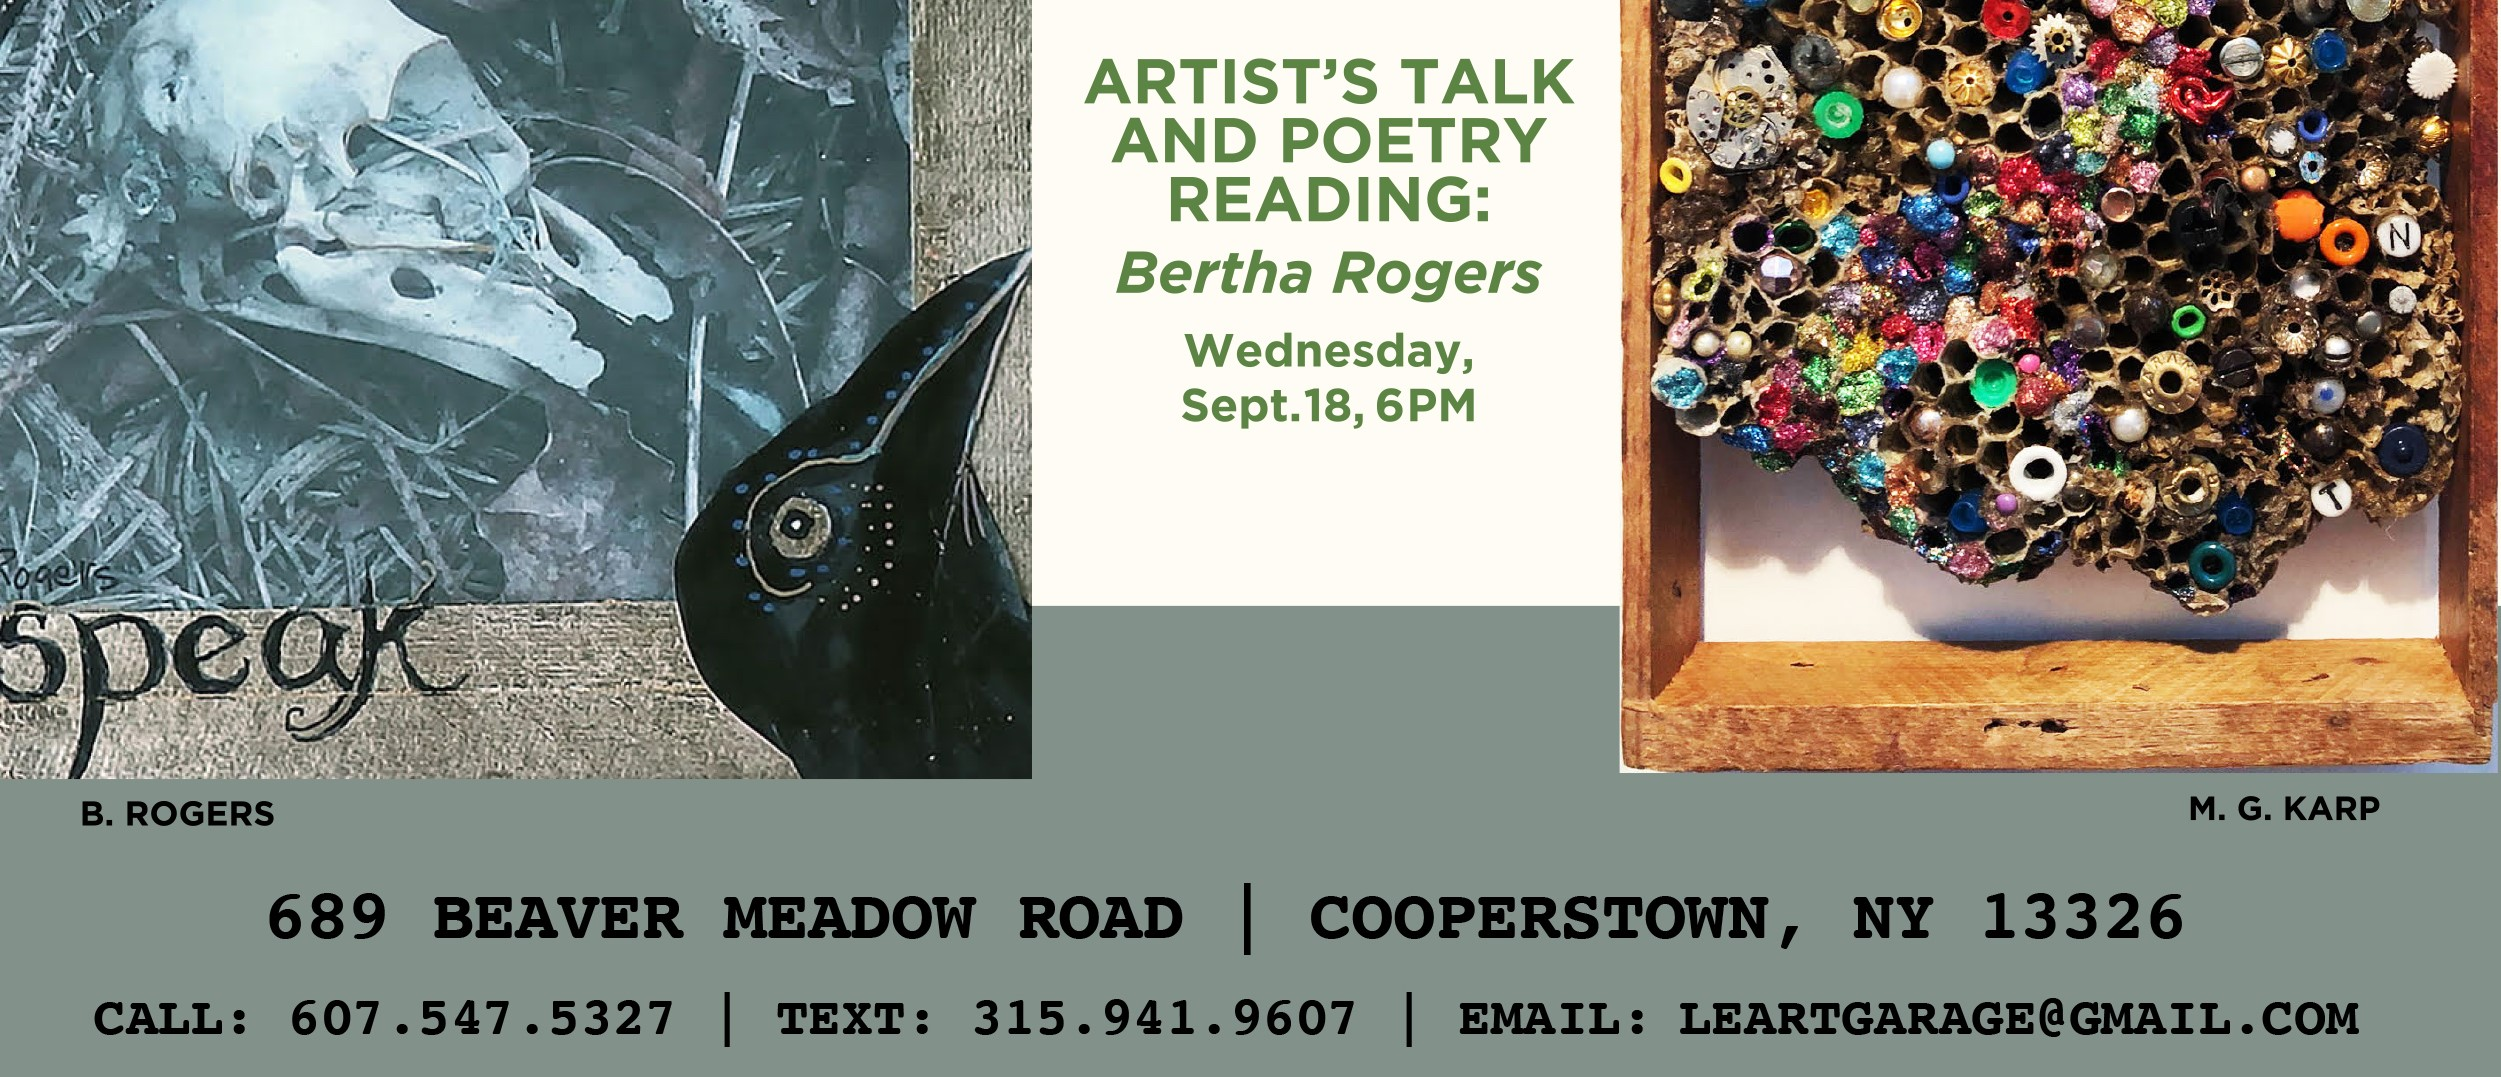 Artist's Talk and Poetry Reading: Bertha Rogers